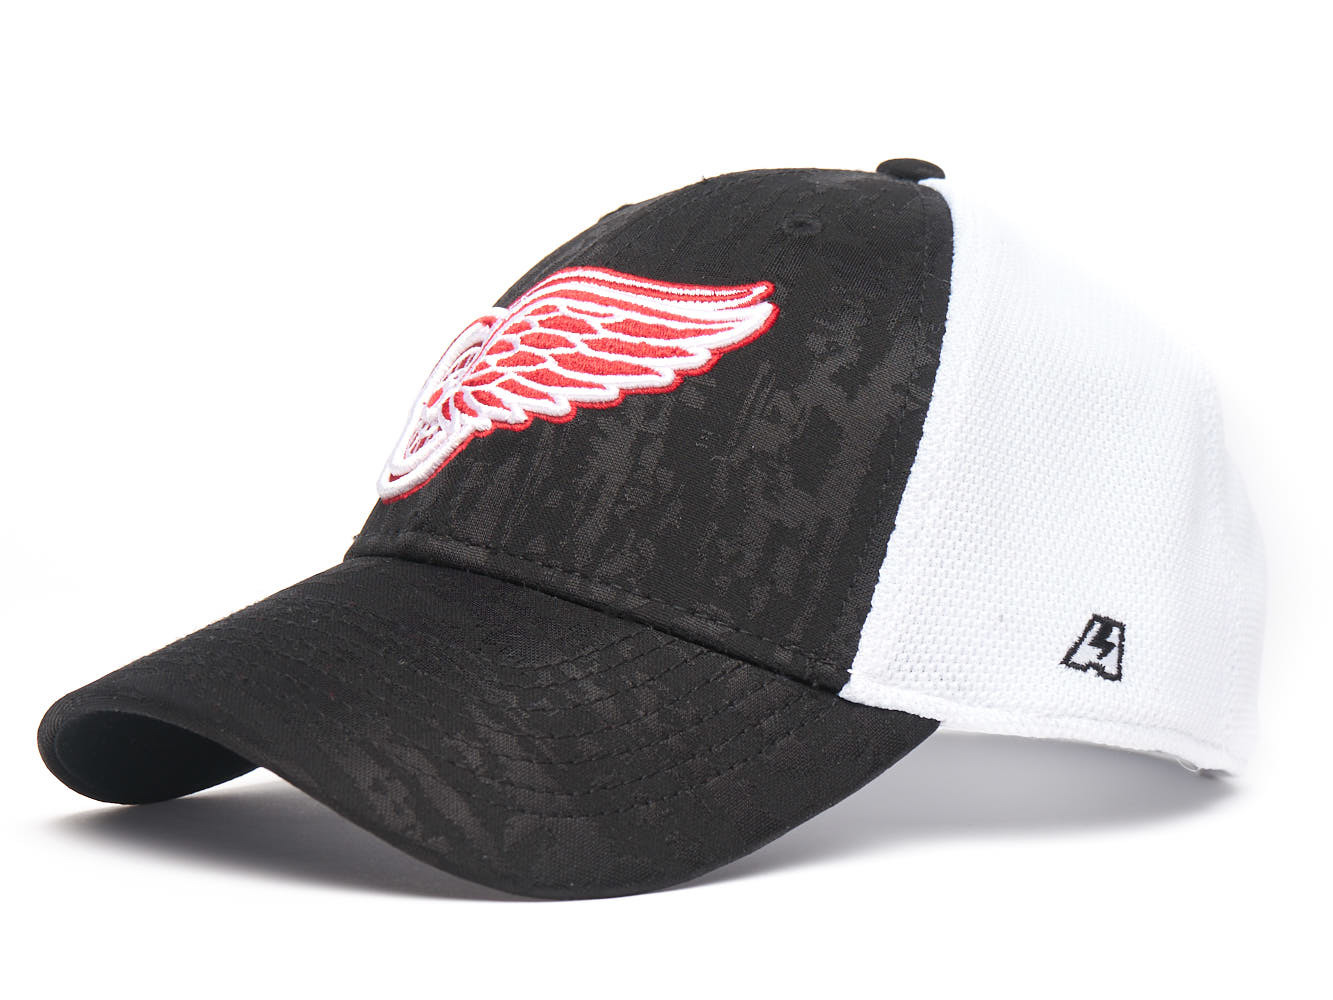 Бейсболка NHL Detroit Red Wings (размер M)